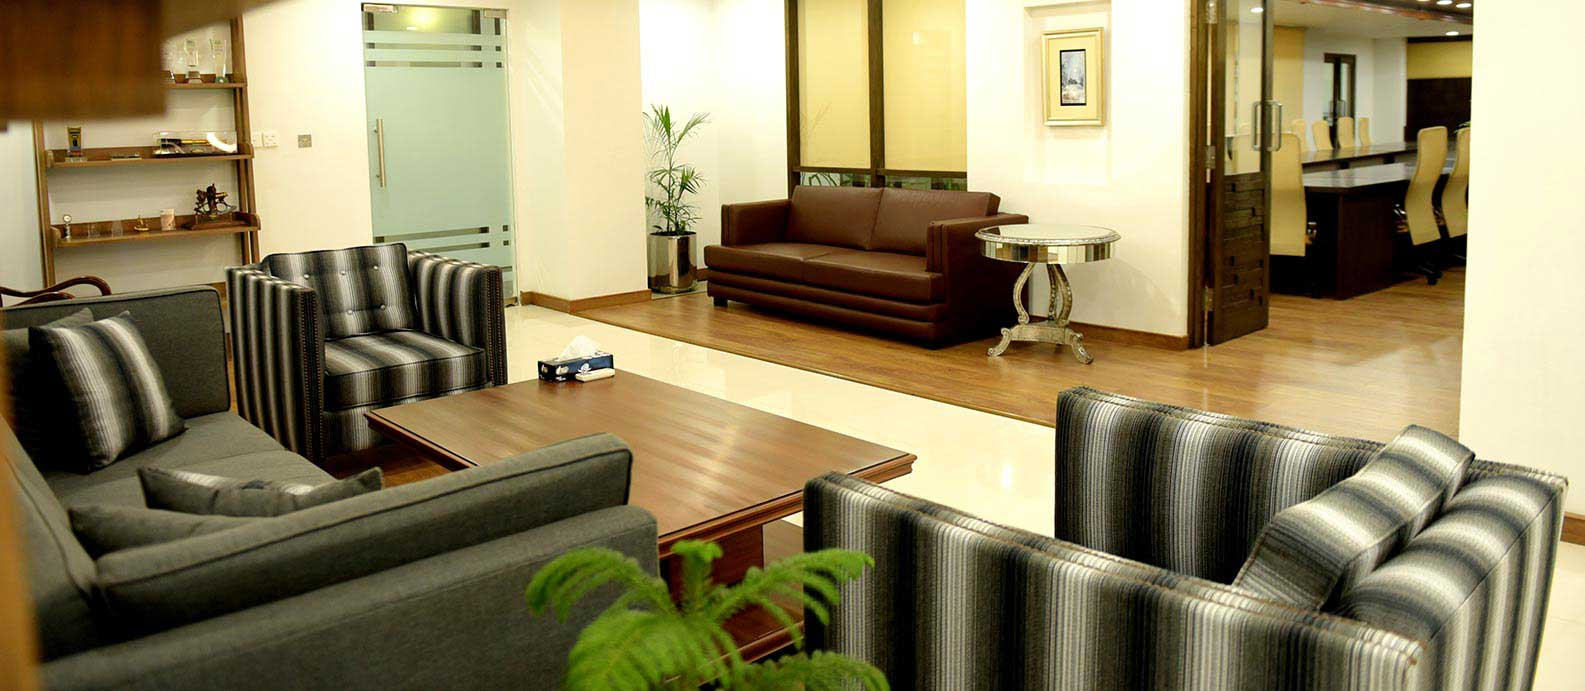 Corporate & Commercial Interior Designing